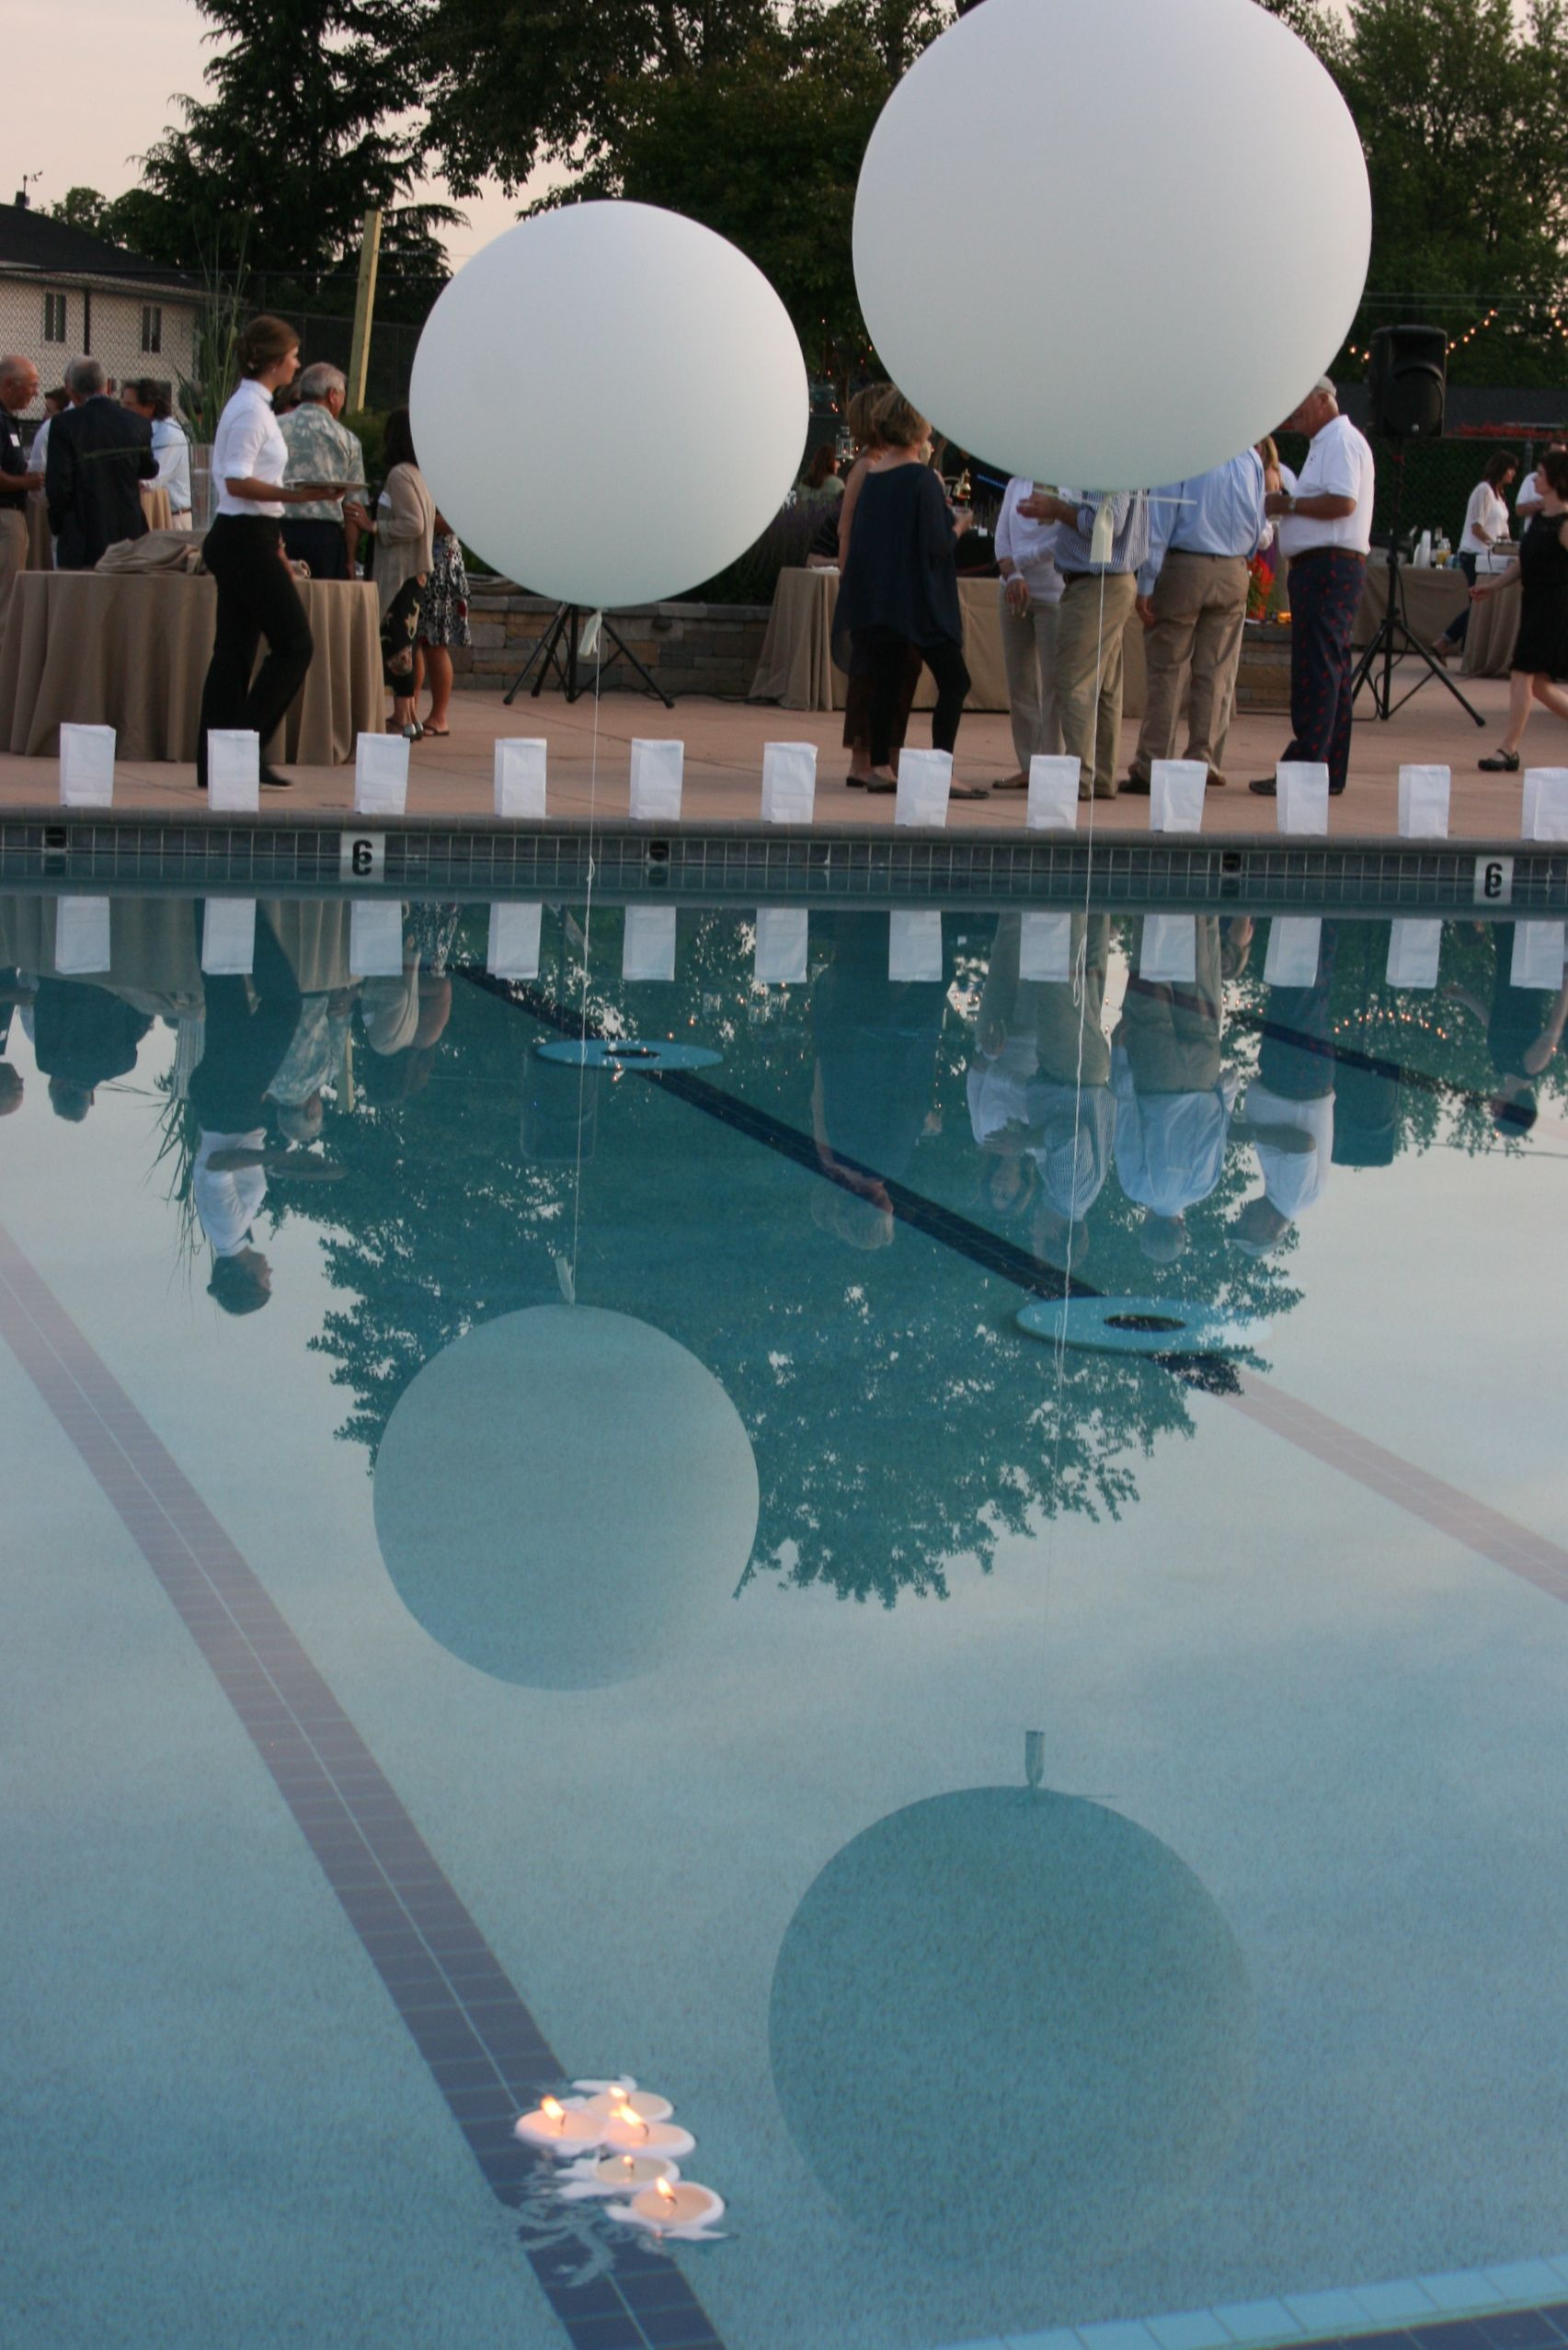 Large Balloon With Weighted Ends In Pool Wedding Pool Party